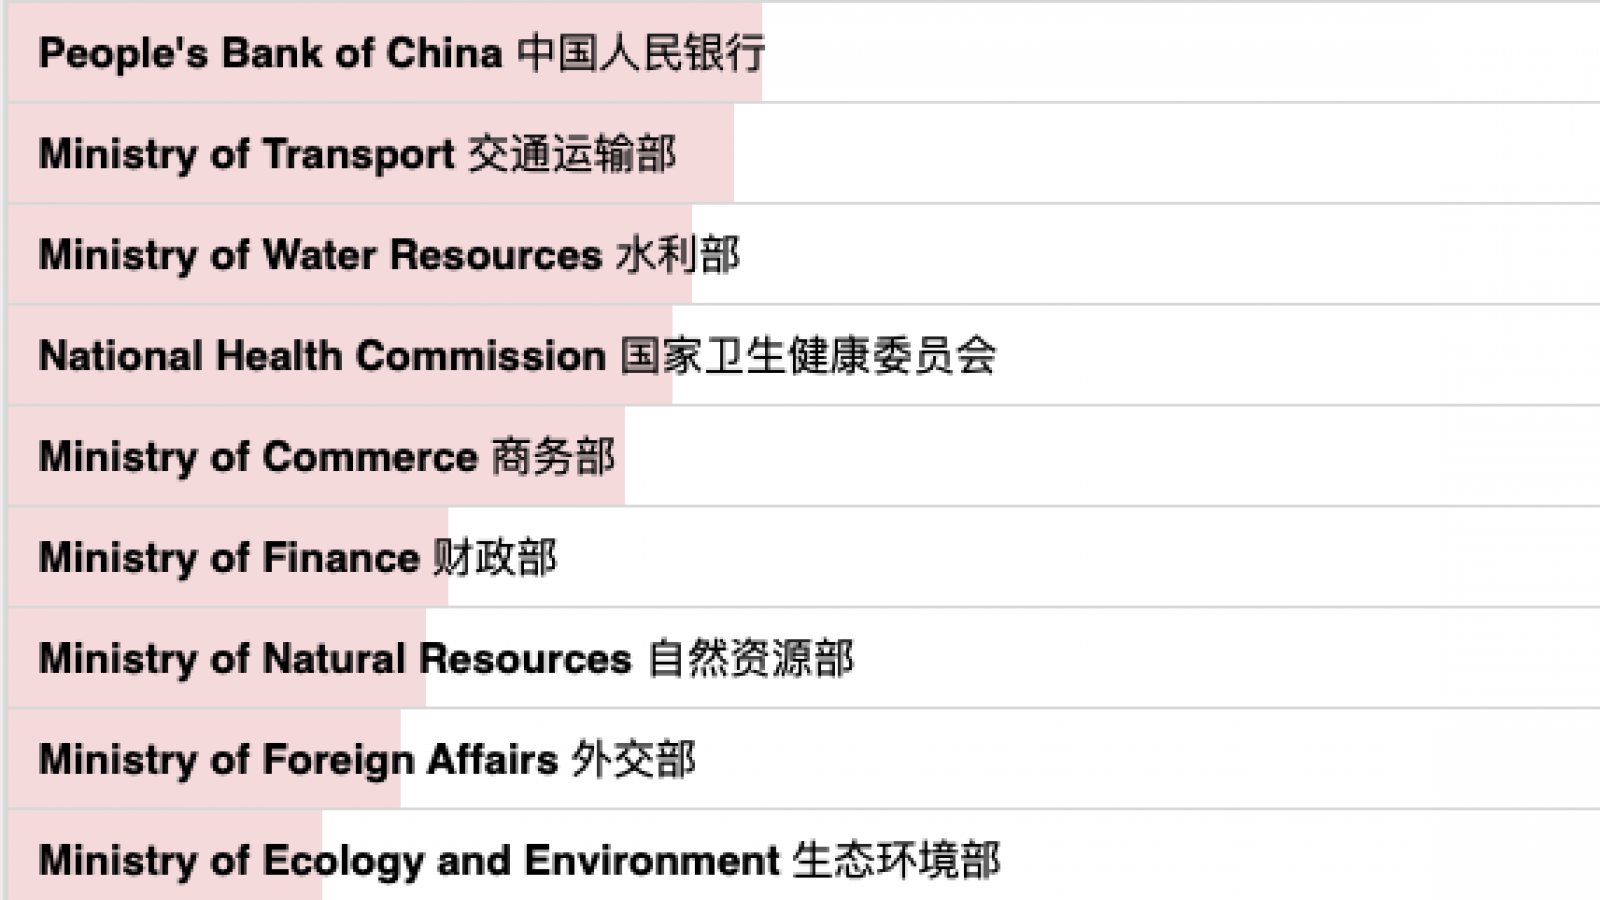 English and Chinese text overlays a horizontal bar graph, showing Ministry of Education with the longest red bar, down to Ministry of Human Resources and Social Security with the smallest red bar.